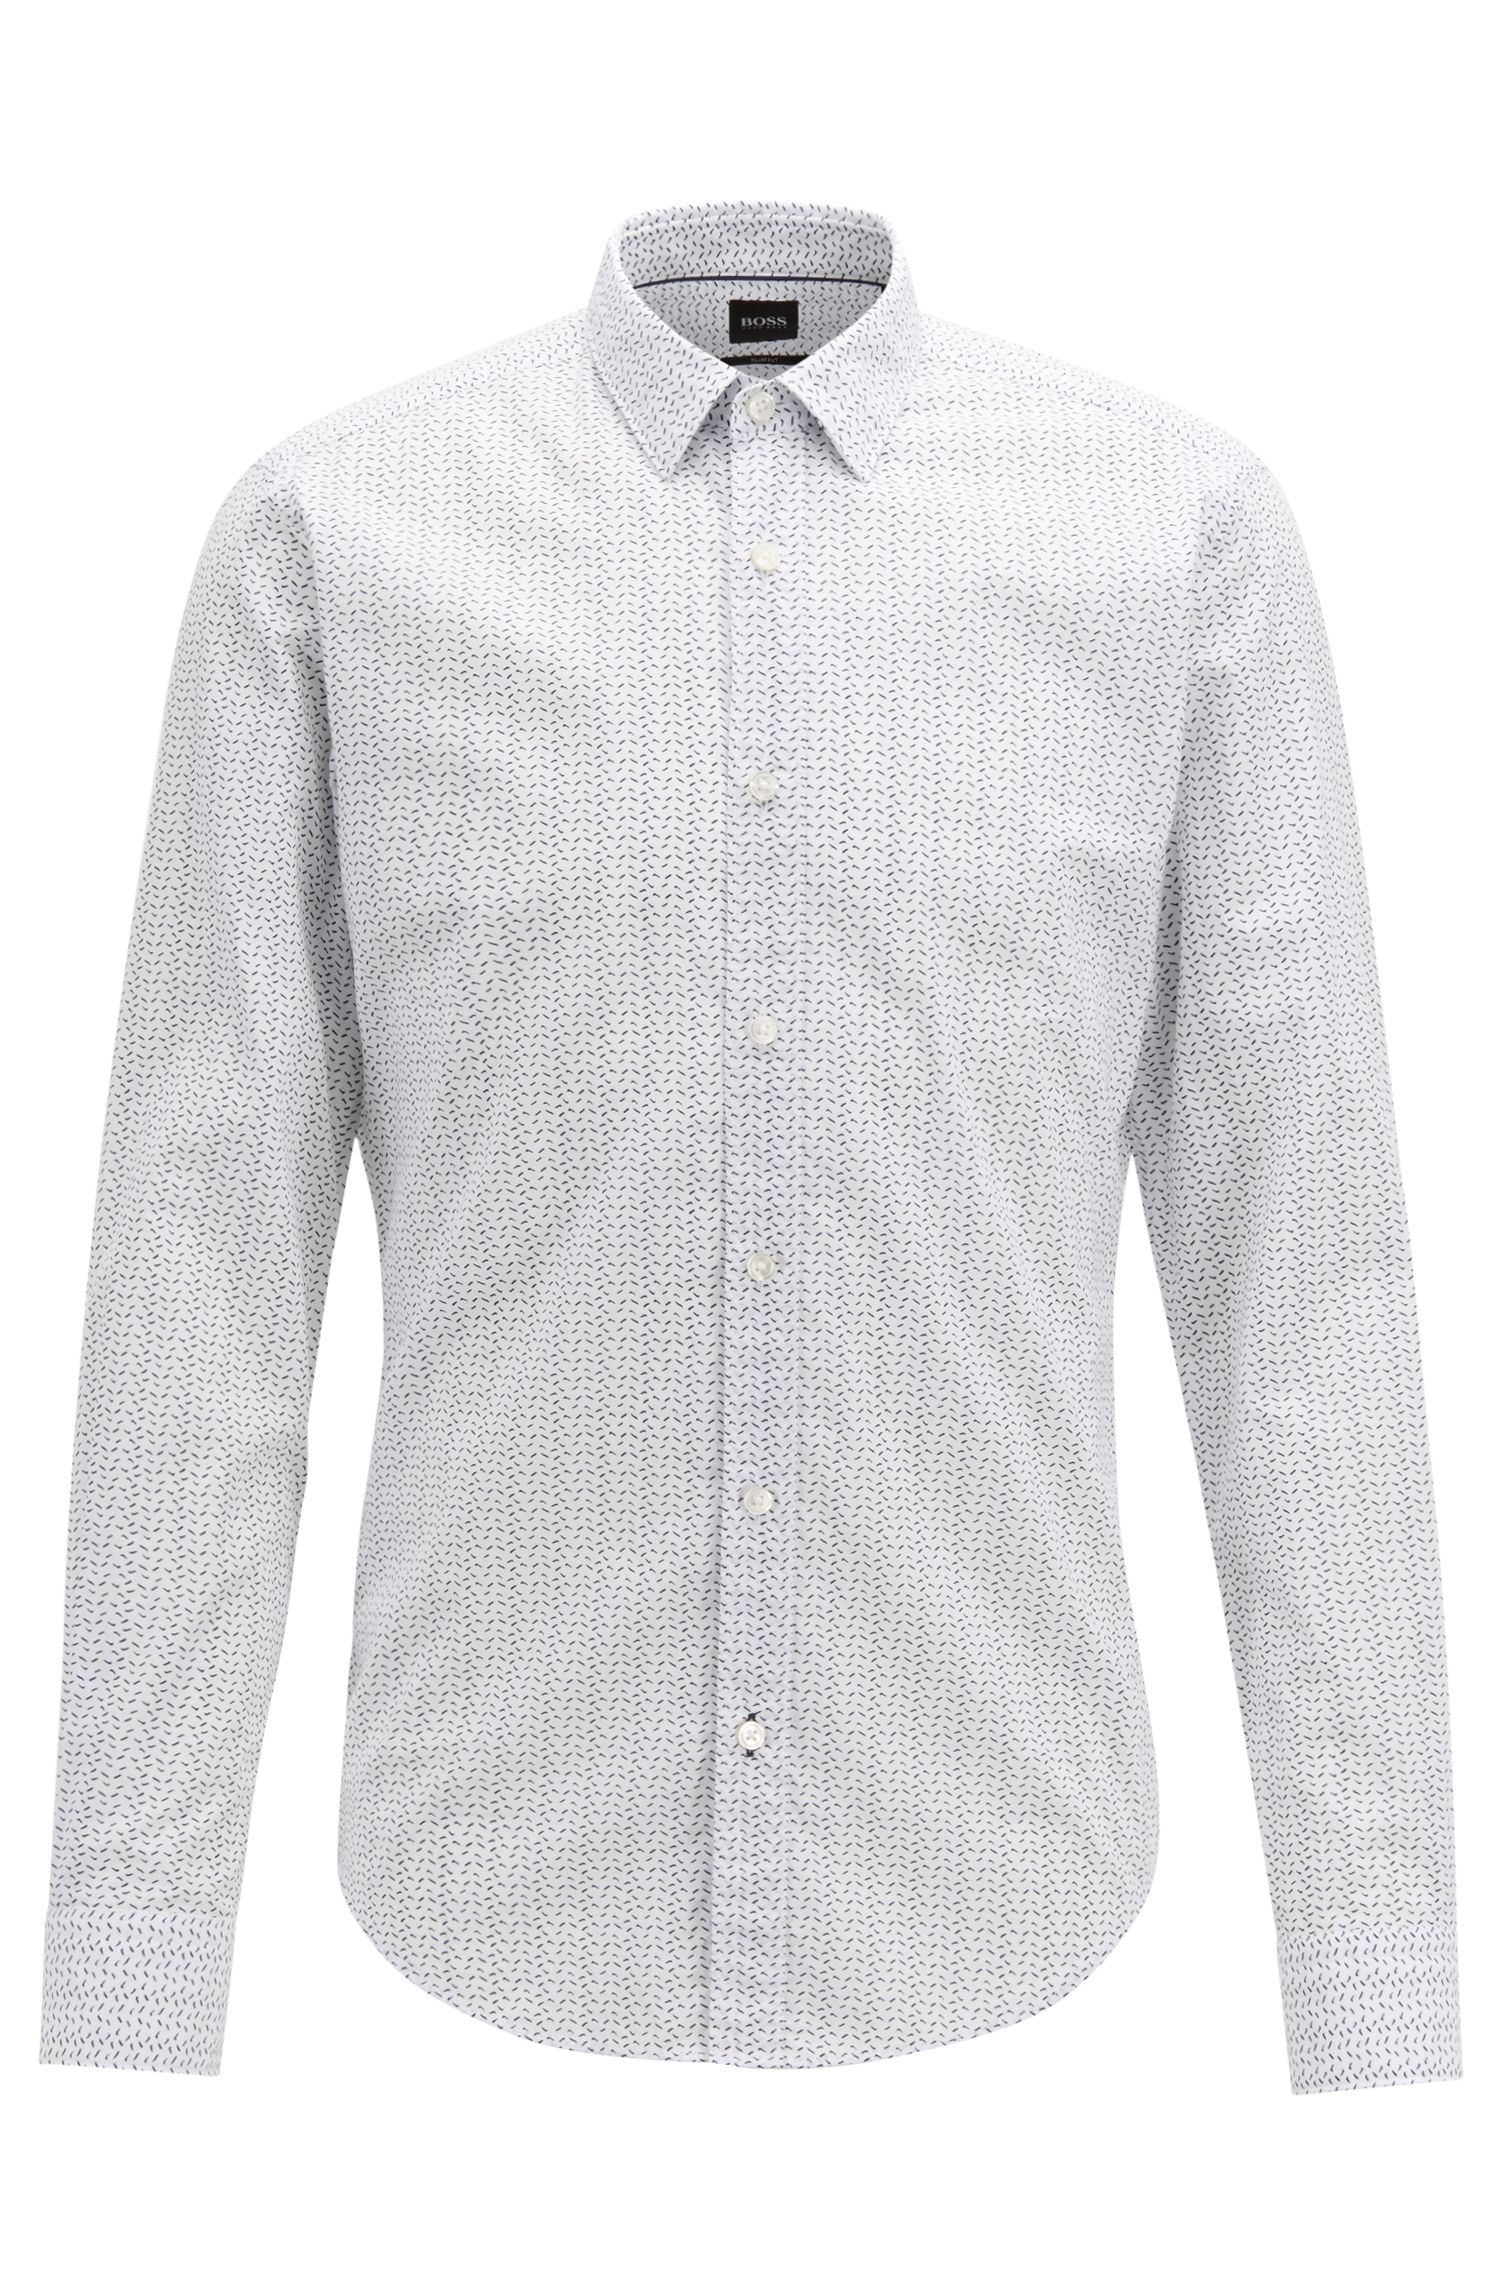 Italian-made slim-fit shirt in patterned cotton, White